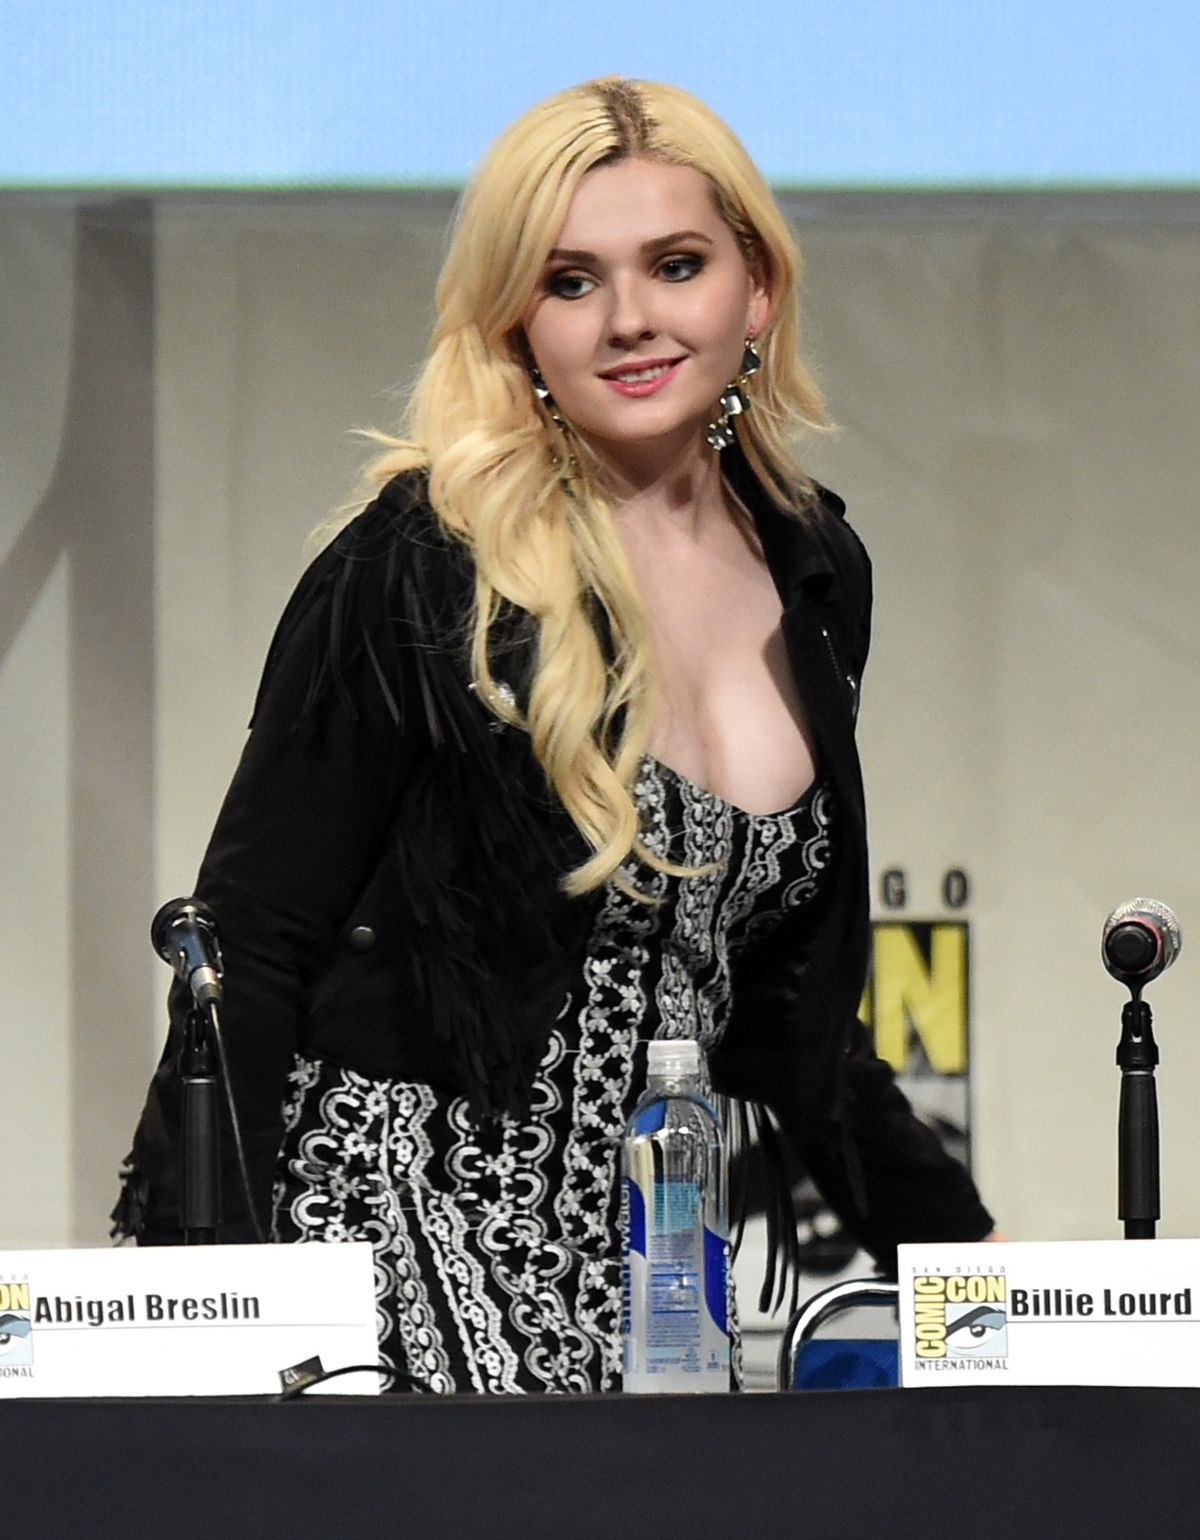 ABIGAIL BRESLIN at Scream Queens Panel at Comic-con in San Diego